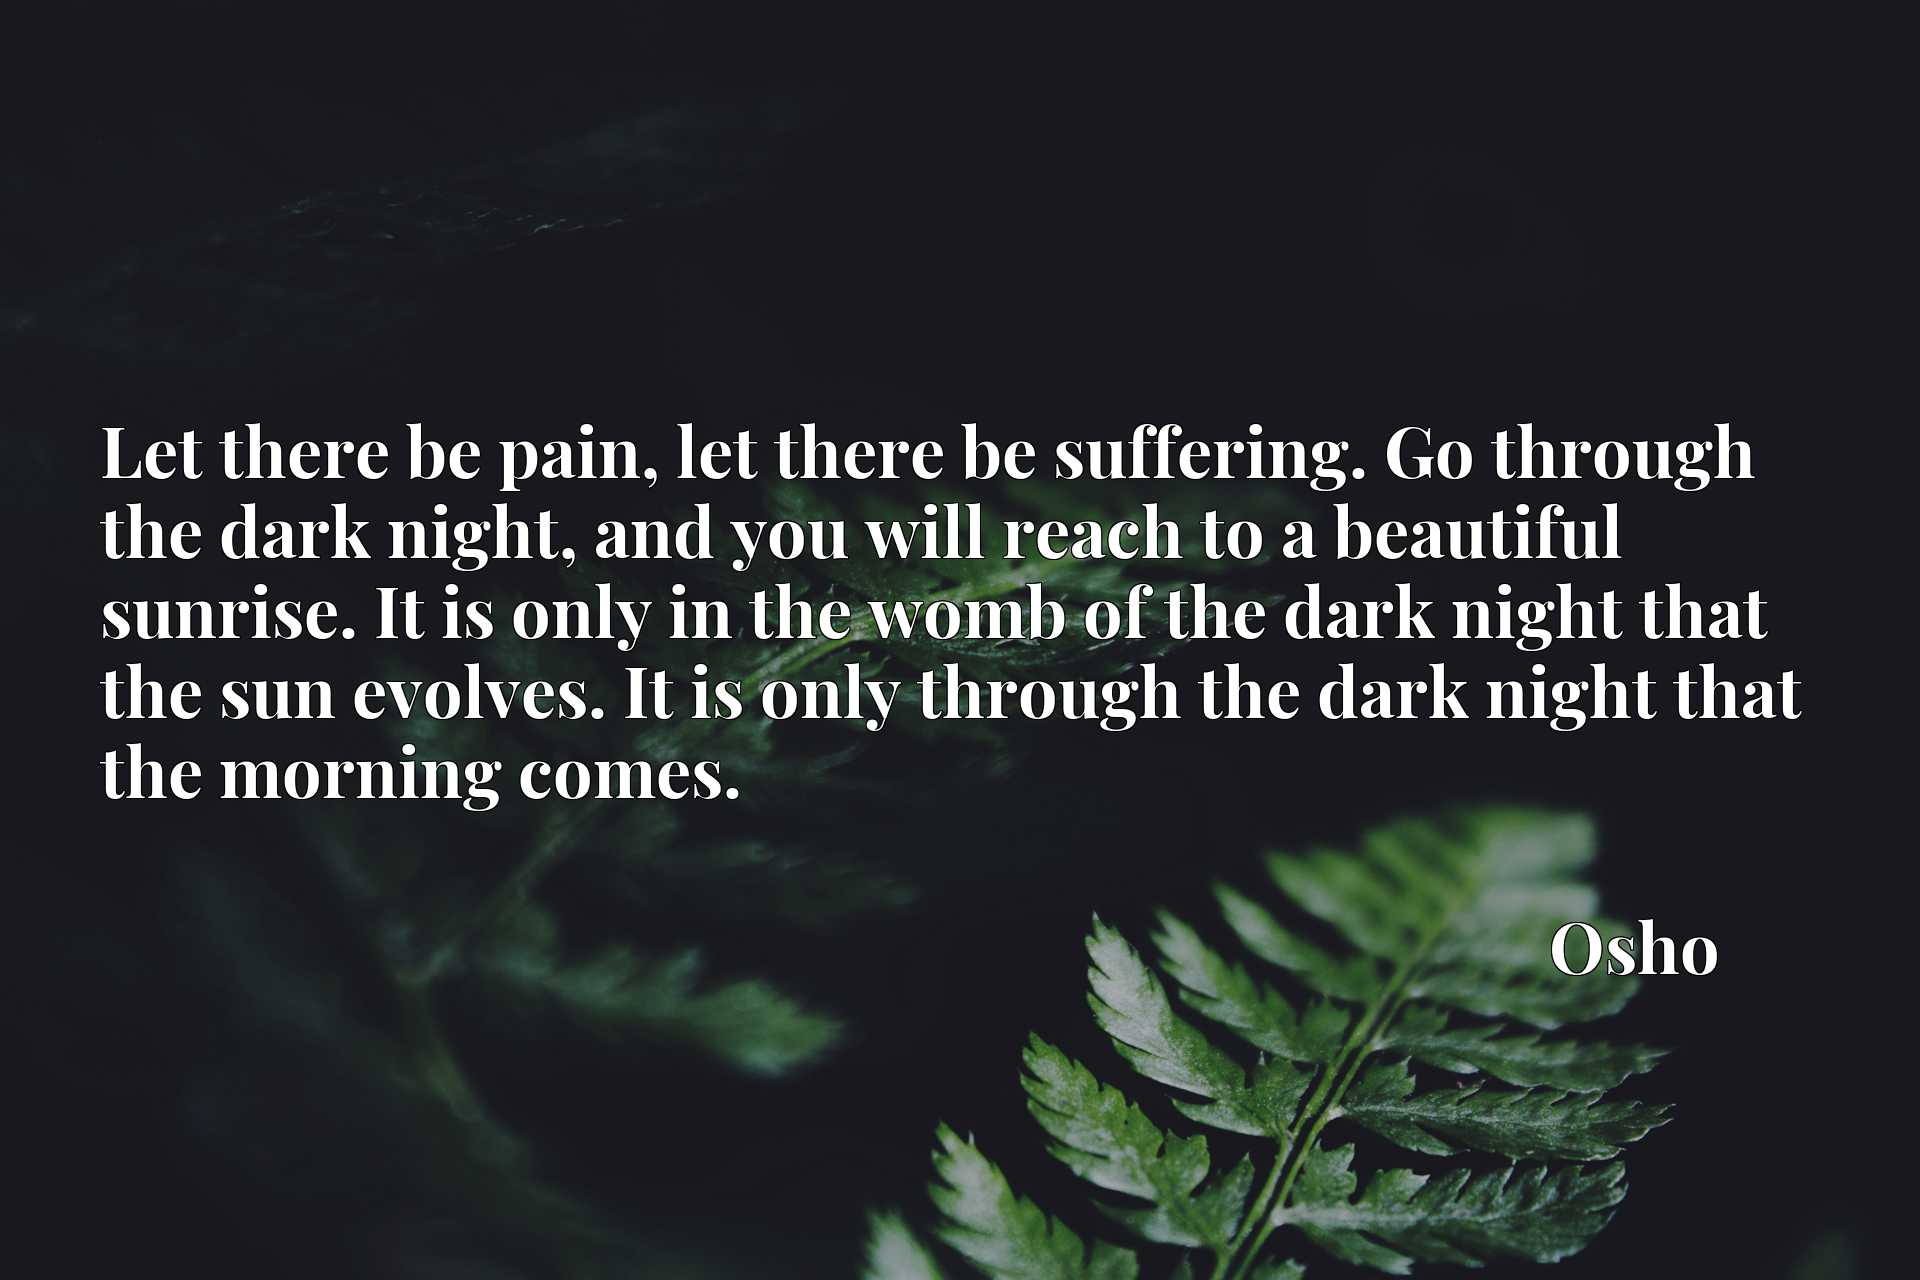 Let there be pain, let there be suffering. Go through the dark night, and you will reach to a beautiful sunrise. It is only in the womb of the dark night that the sun evolves. It is only through the dark night that the morning comes.